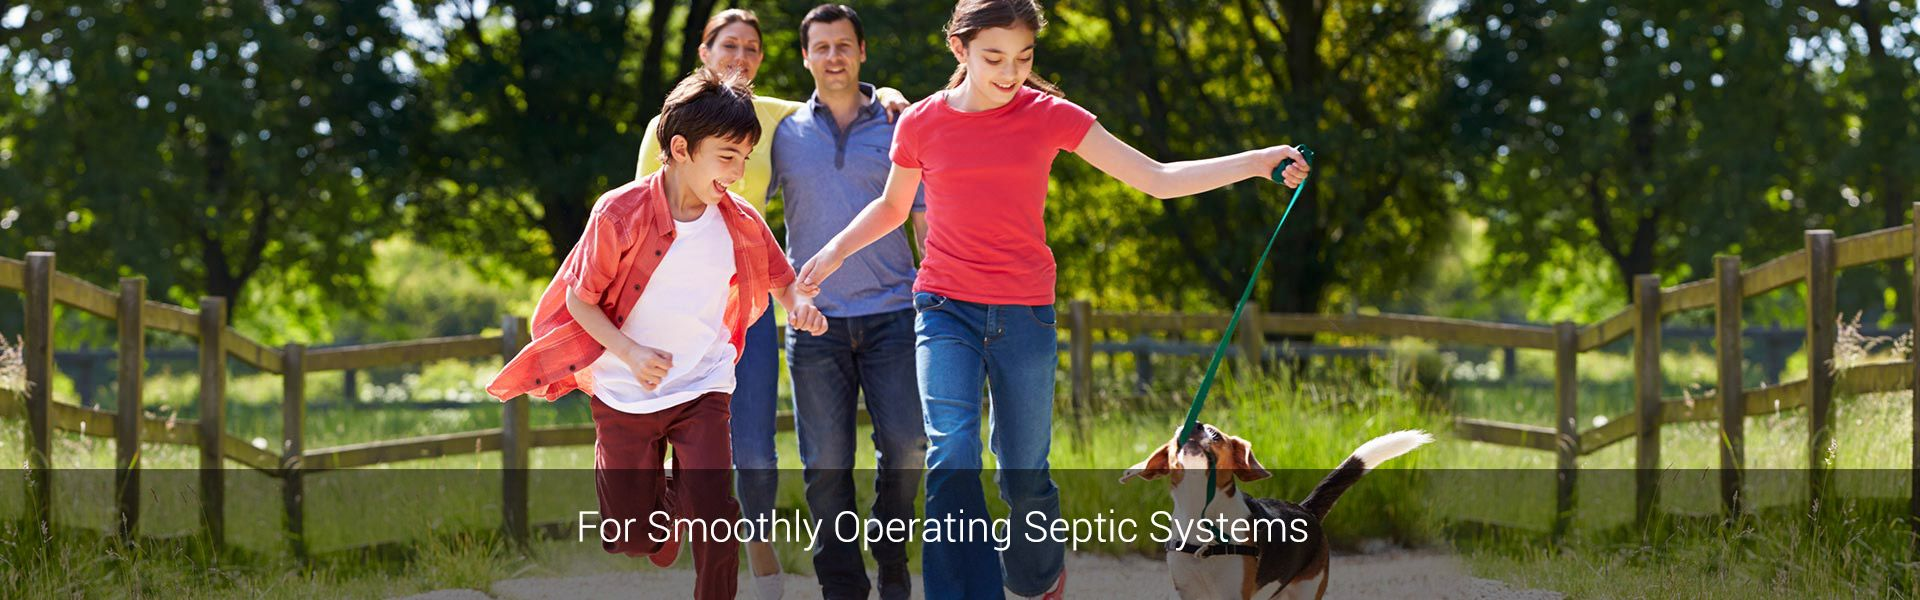 For Smoothly Operating Septic Systems | Family